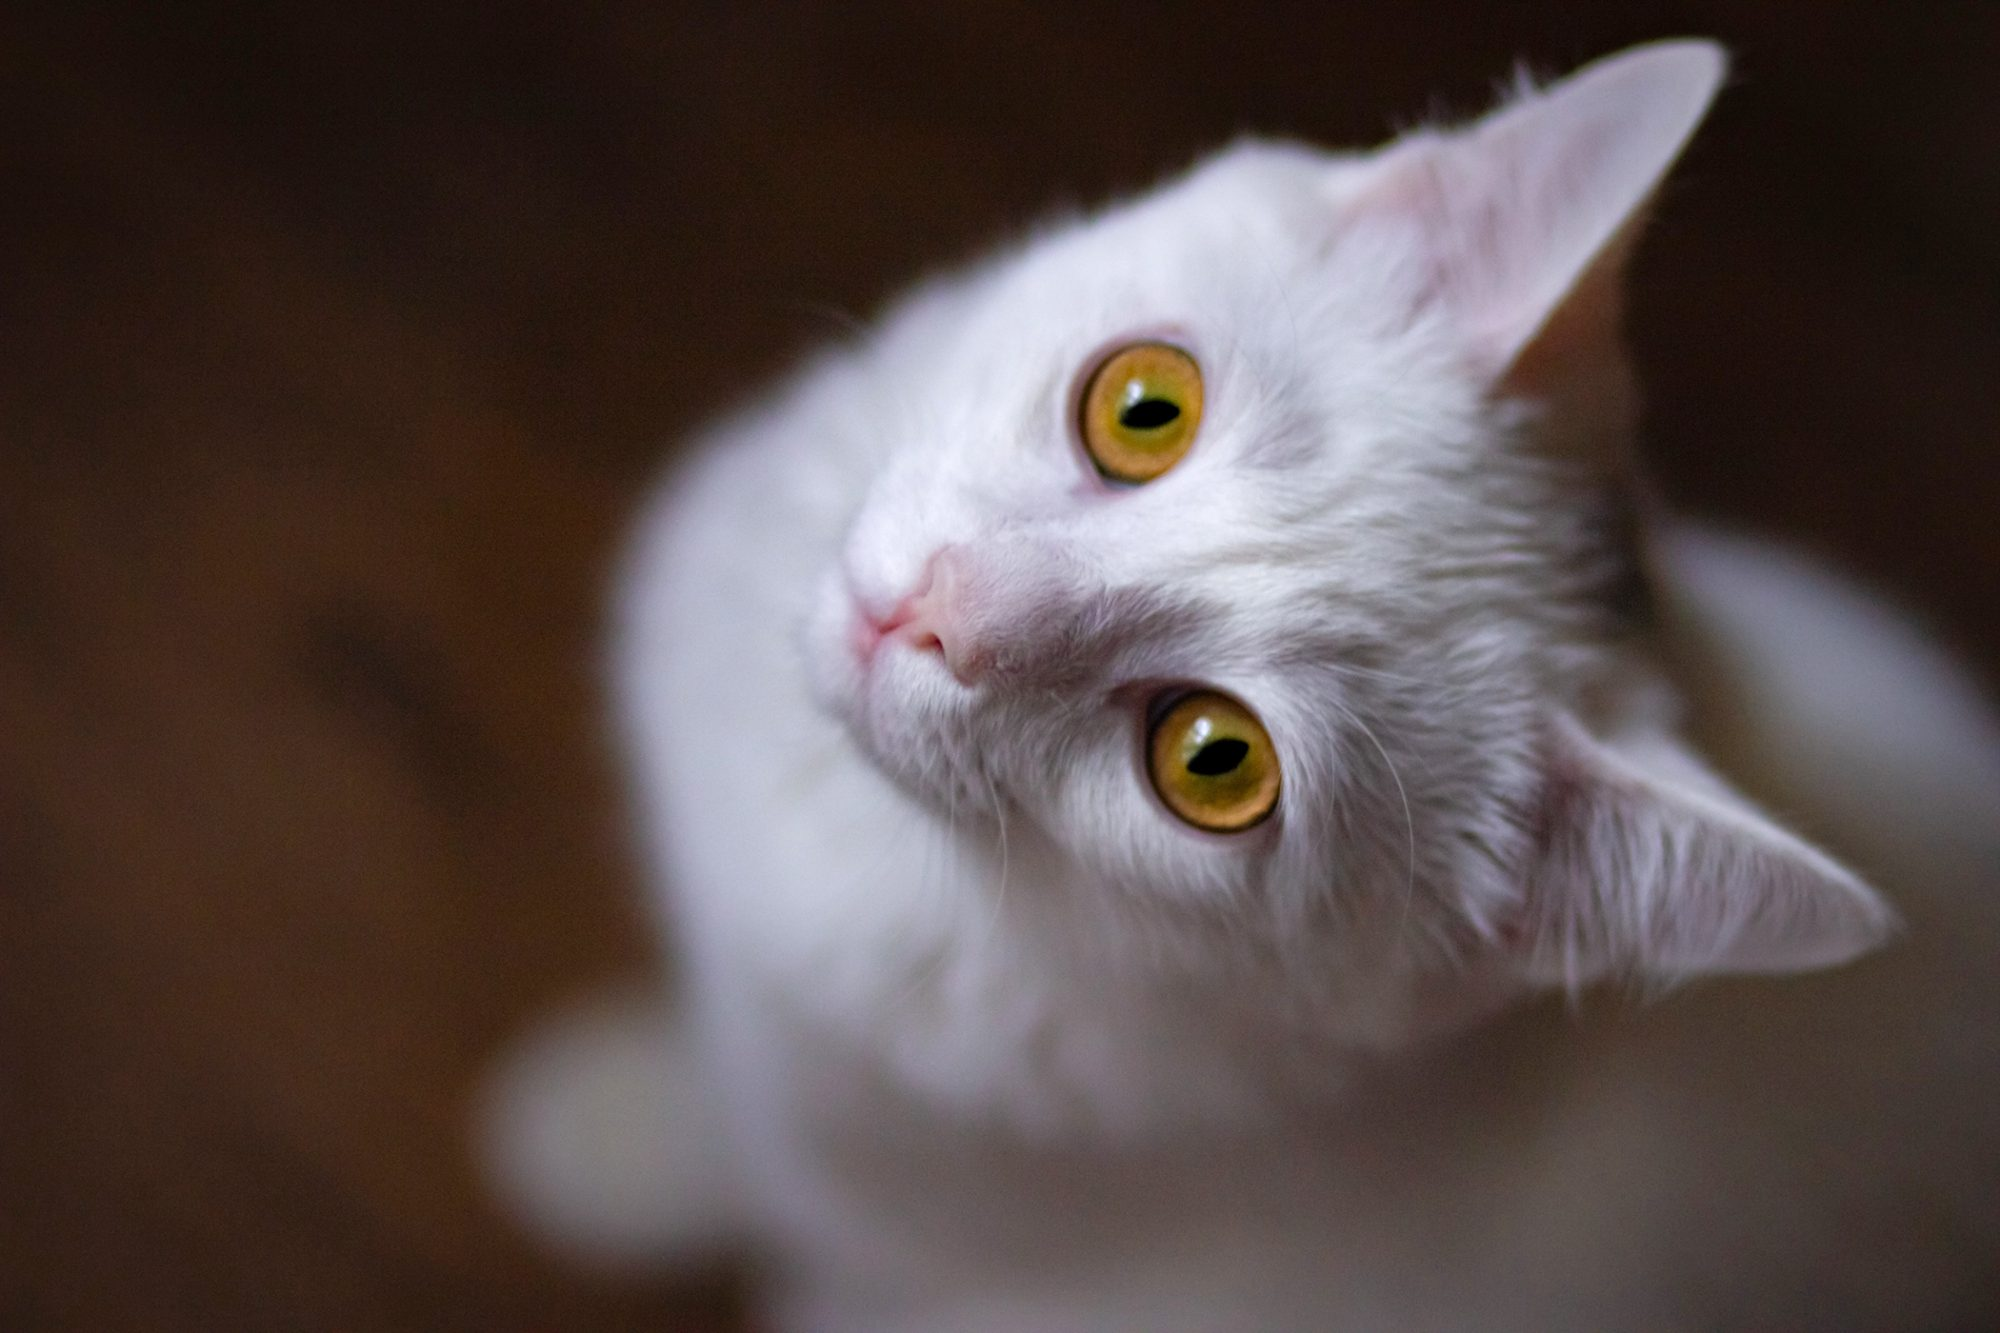 White cat with yellow eyes sits in dark room and stares up at camera